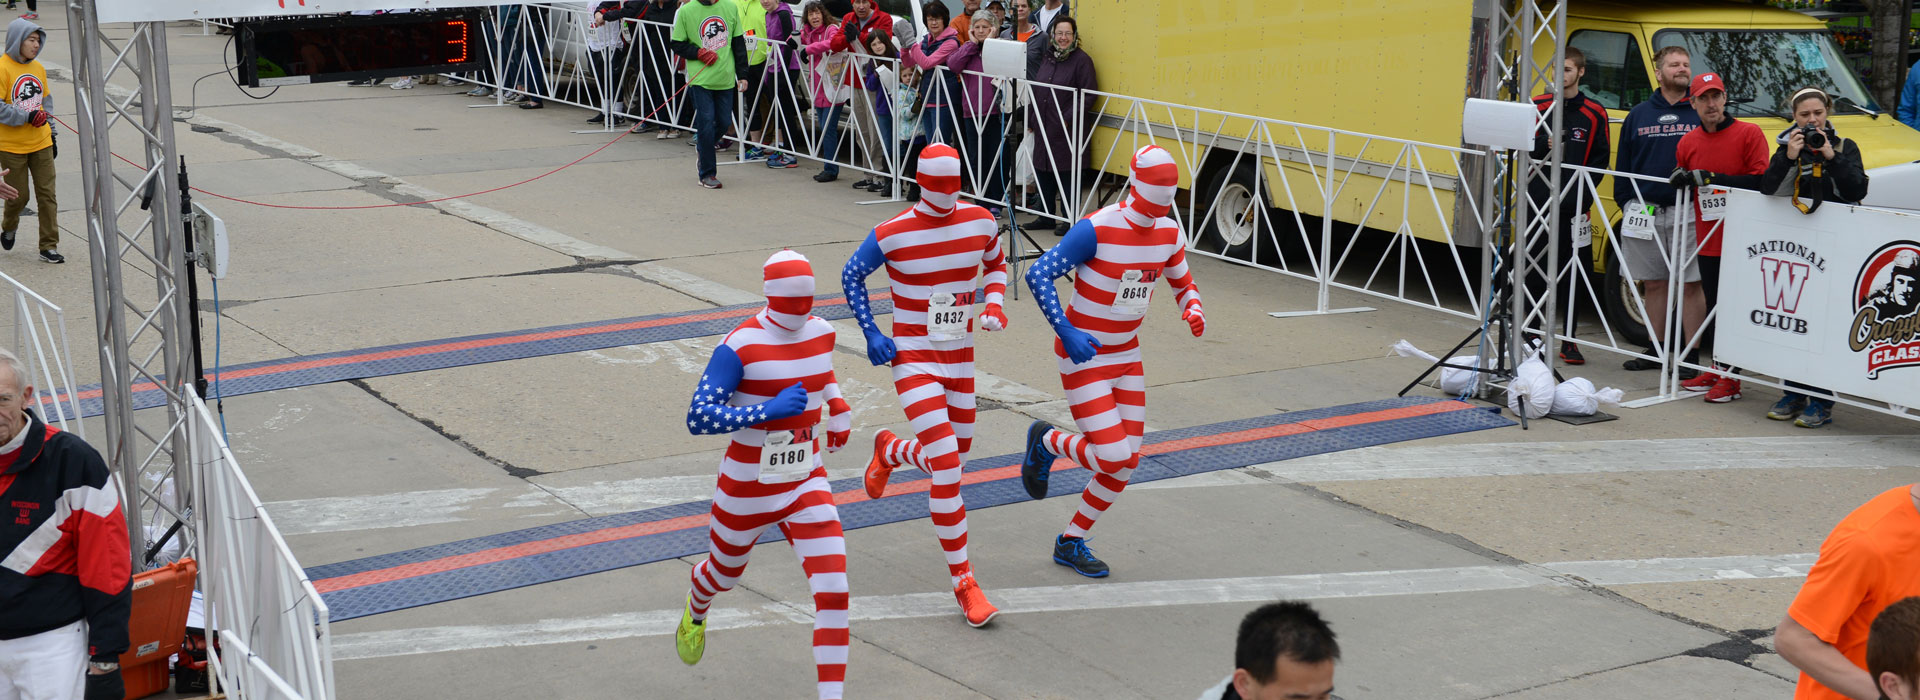 Start of the Race With 3 Runners Dressed in American Flag Spandex Costumes